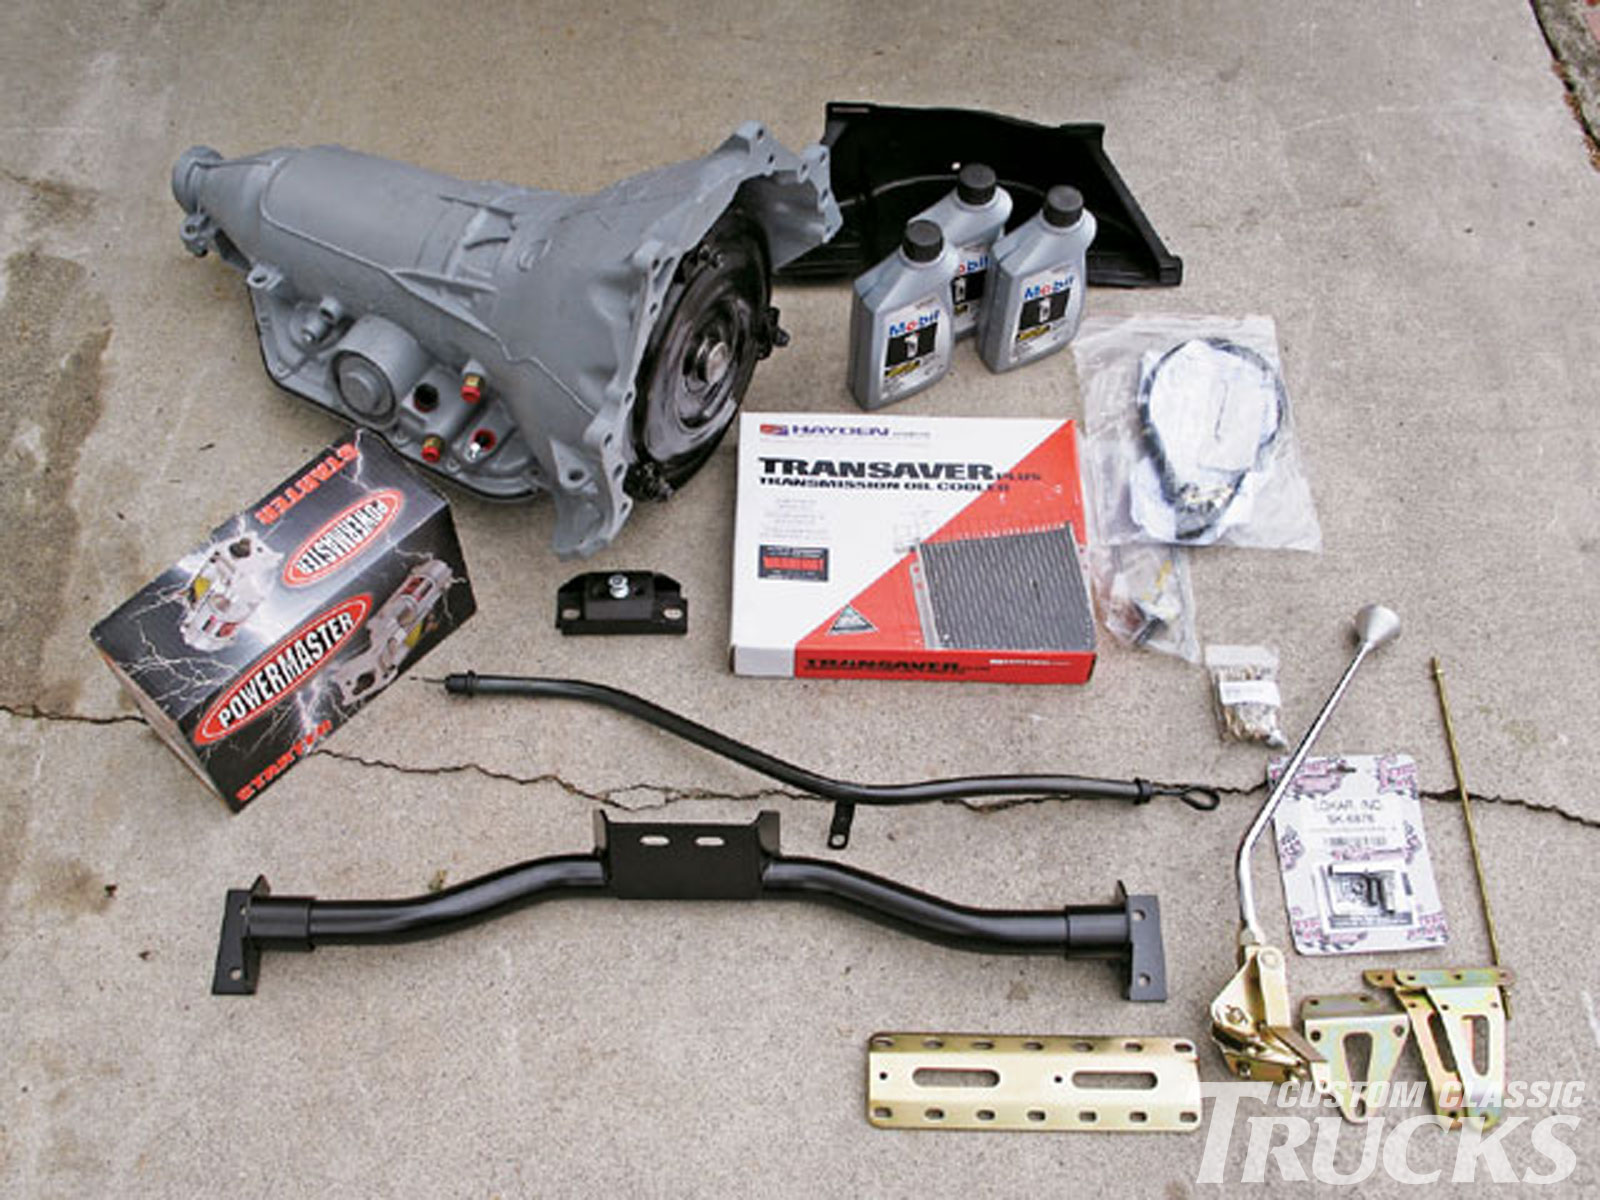 hight resolution of 0703cct 02 z installing a 200r4 transmission transmission parts